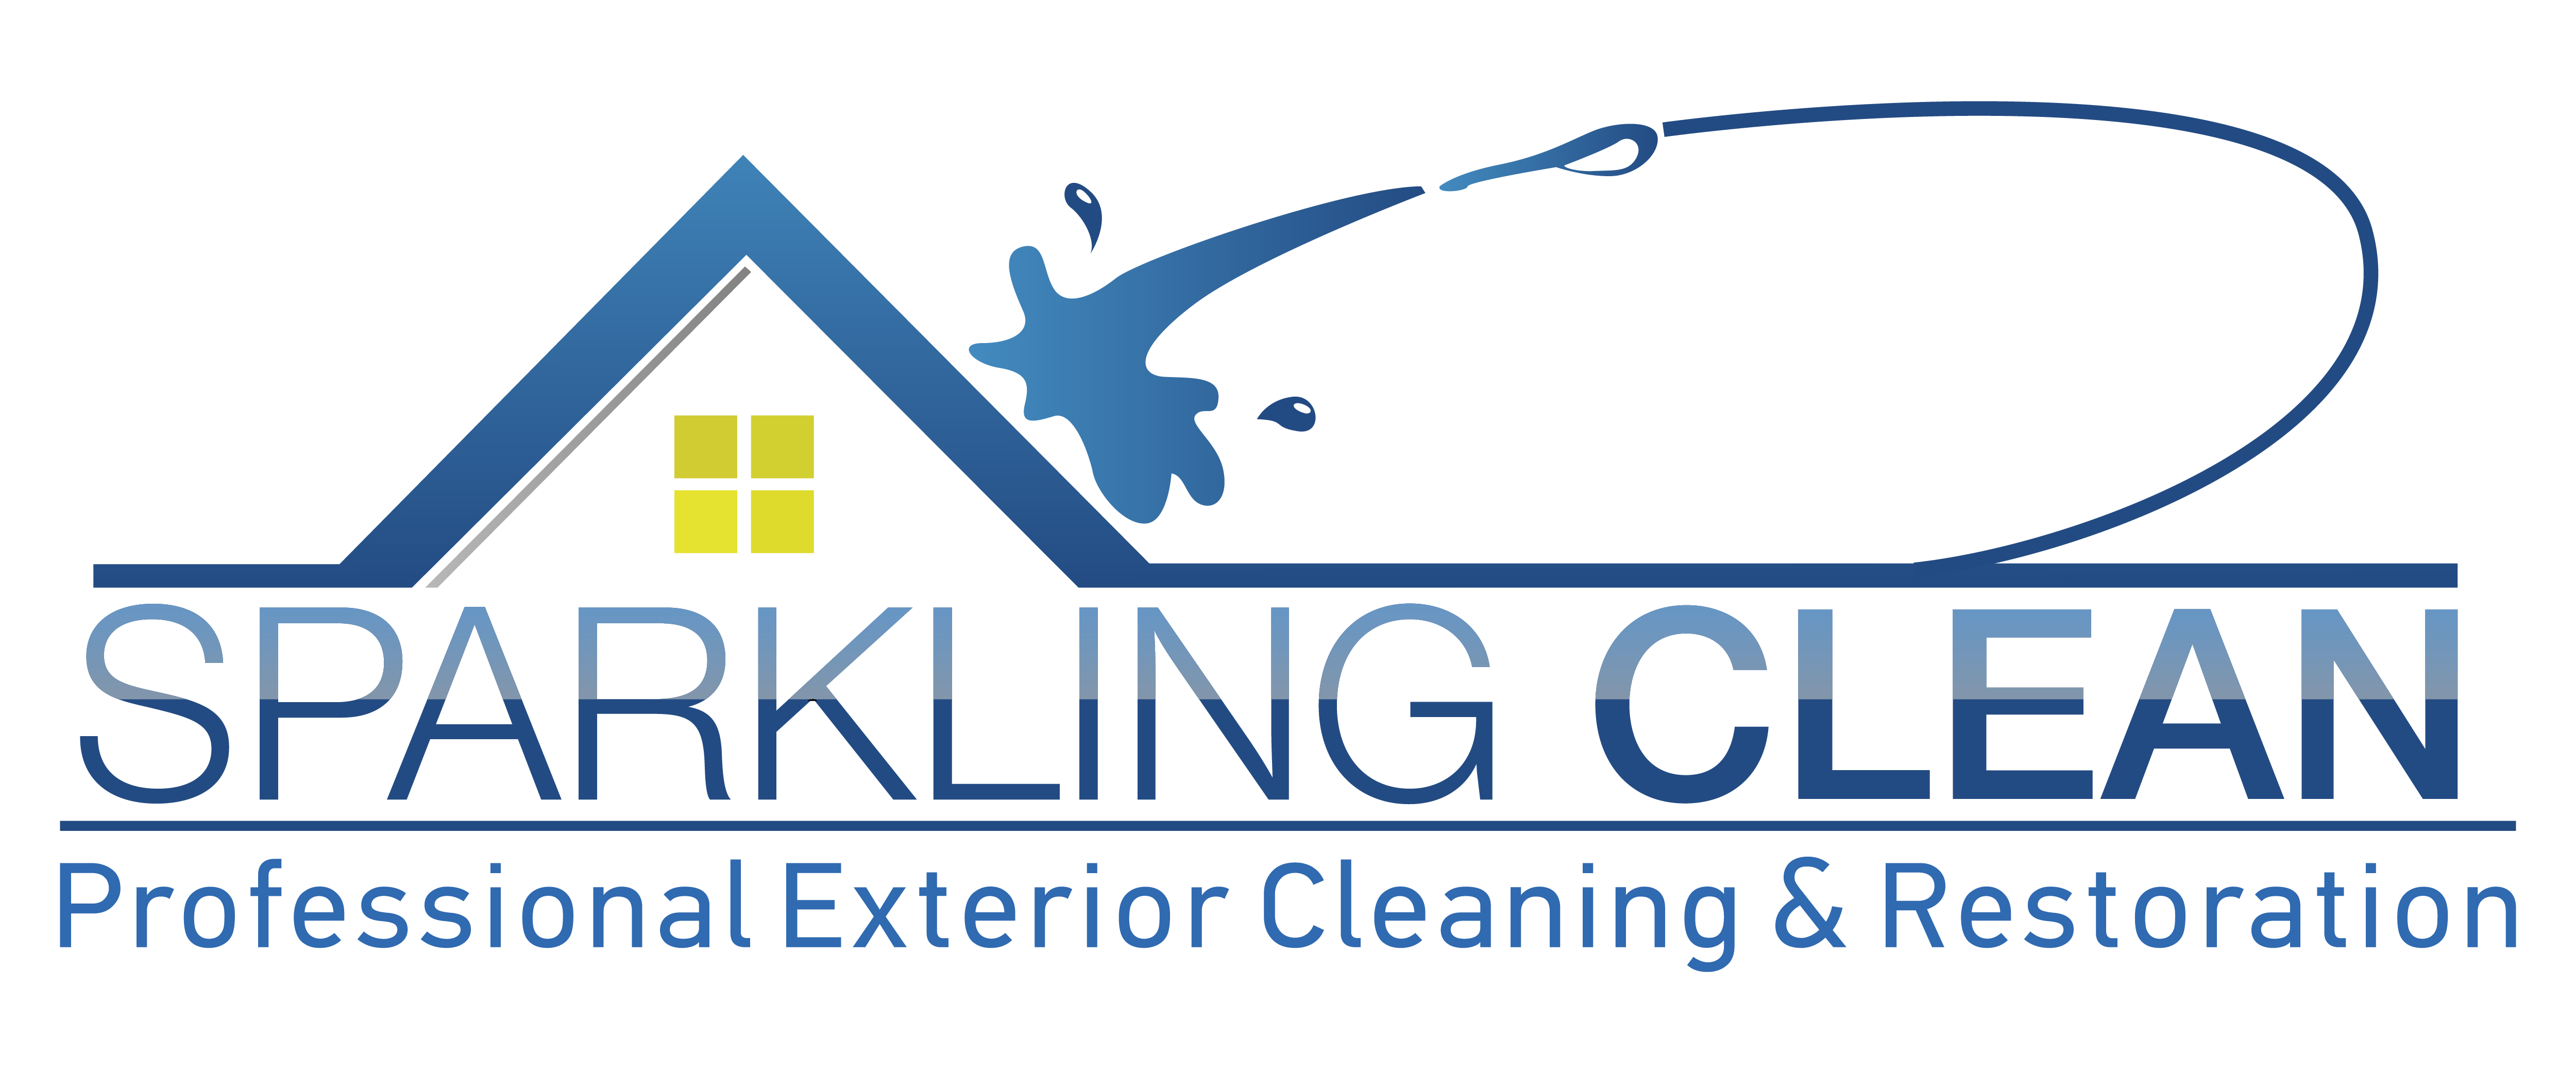 Home sparkling clean Sparkling image roof exterior cleaning